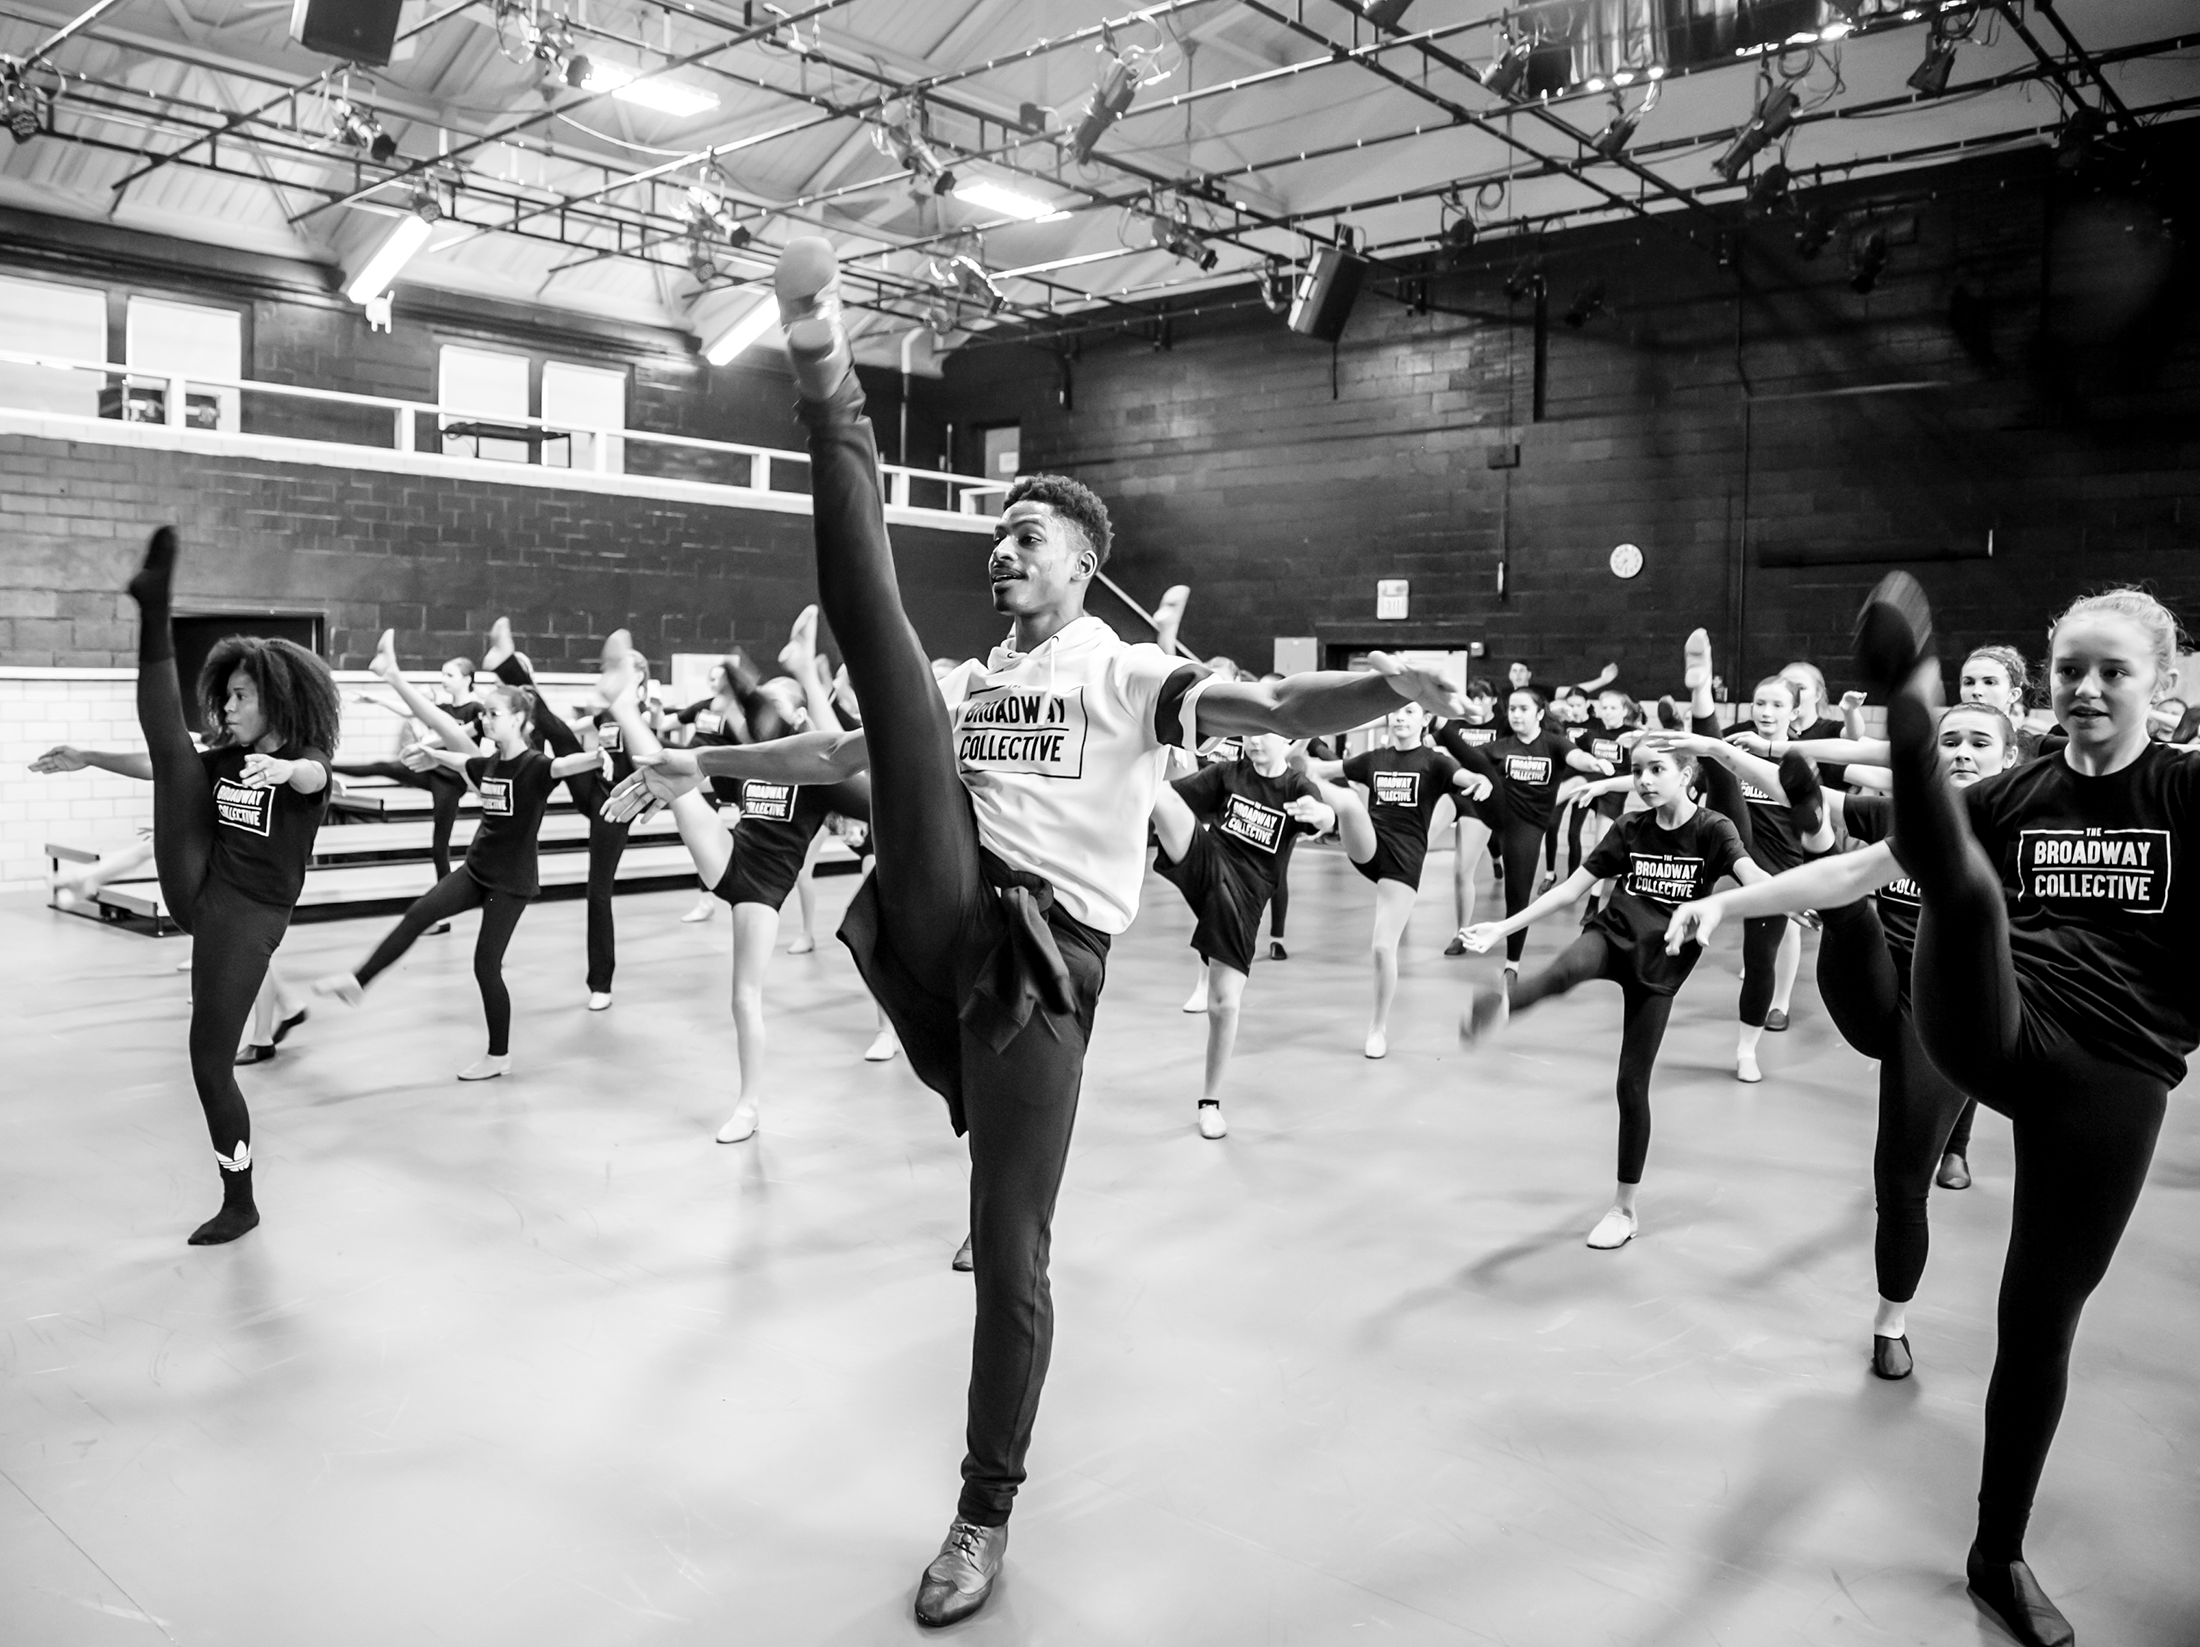 Robert Hartwell teaching for Broadway Collective